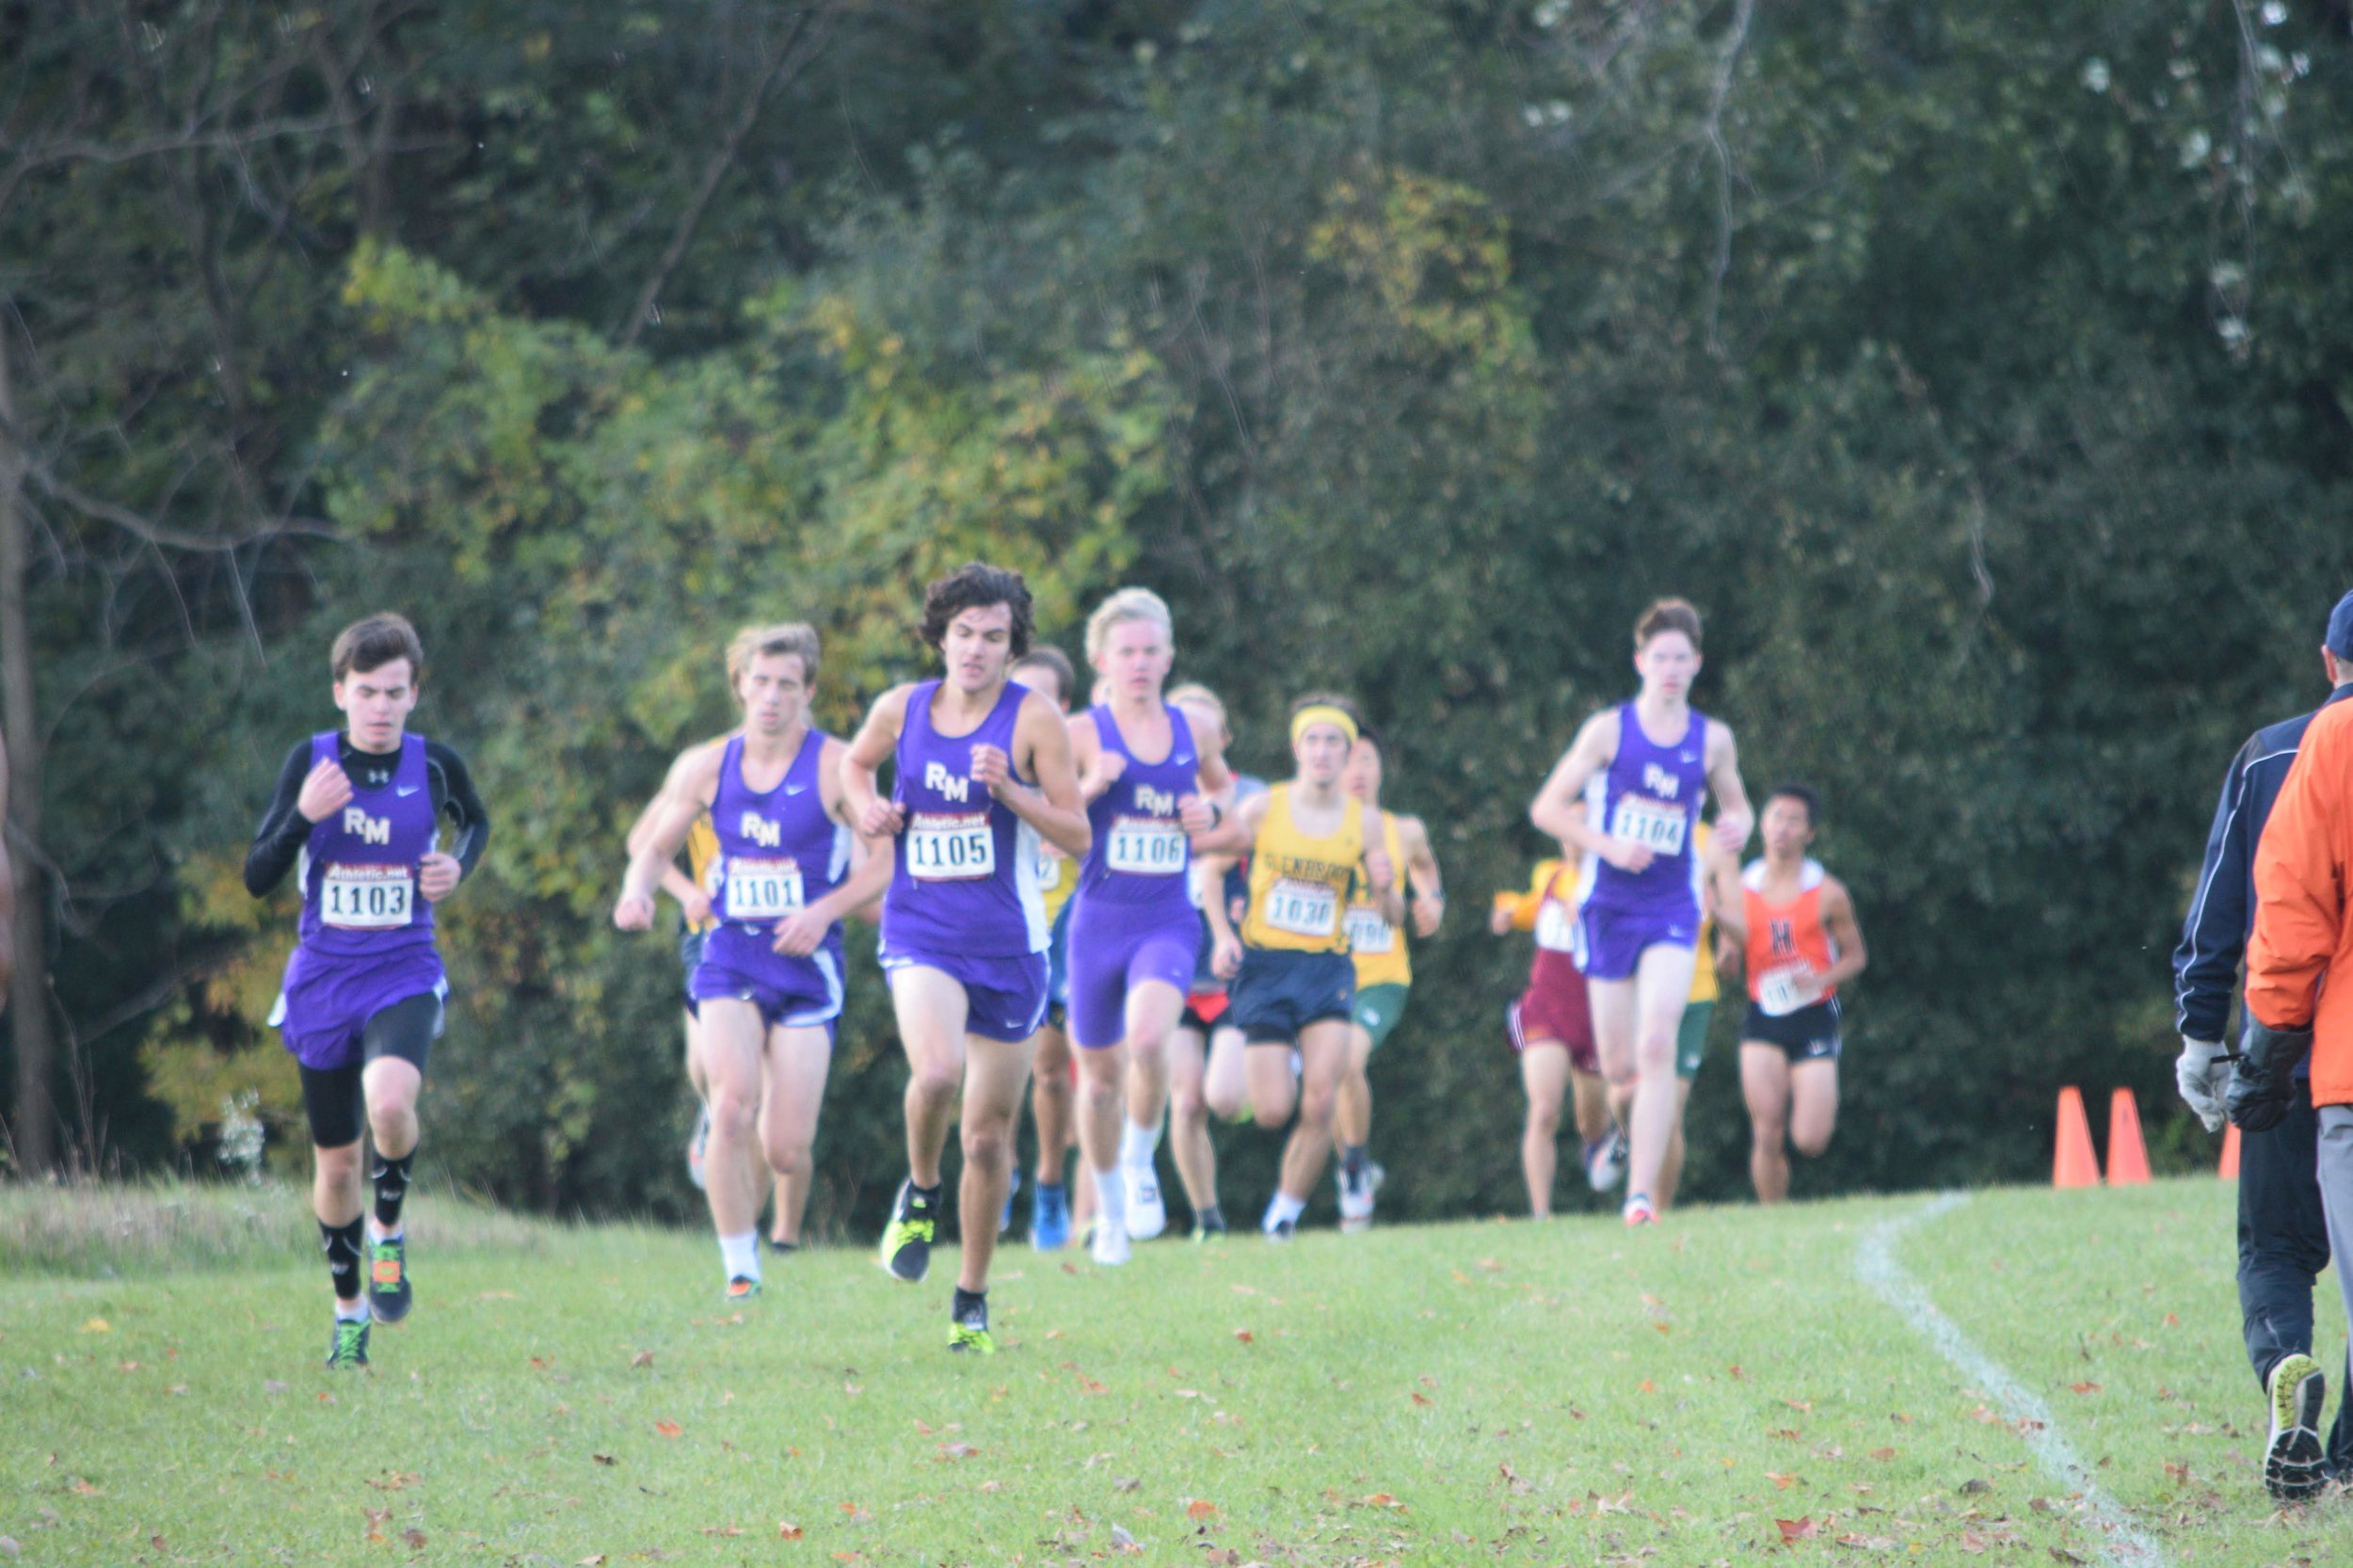 Members of the Rolling Meadows boys cross country team run during a meet leading to the state competition.